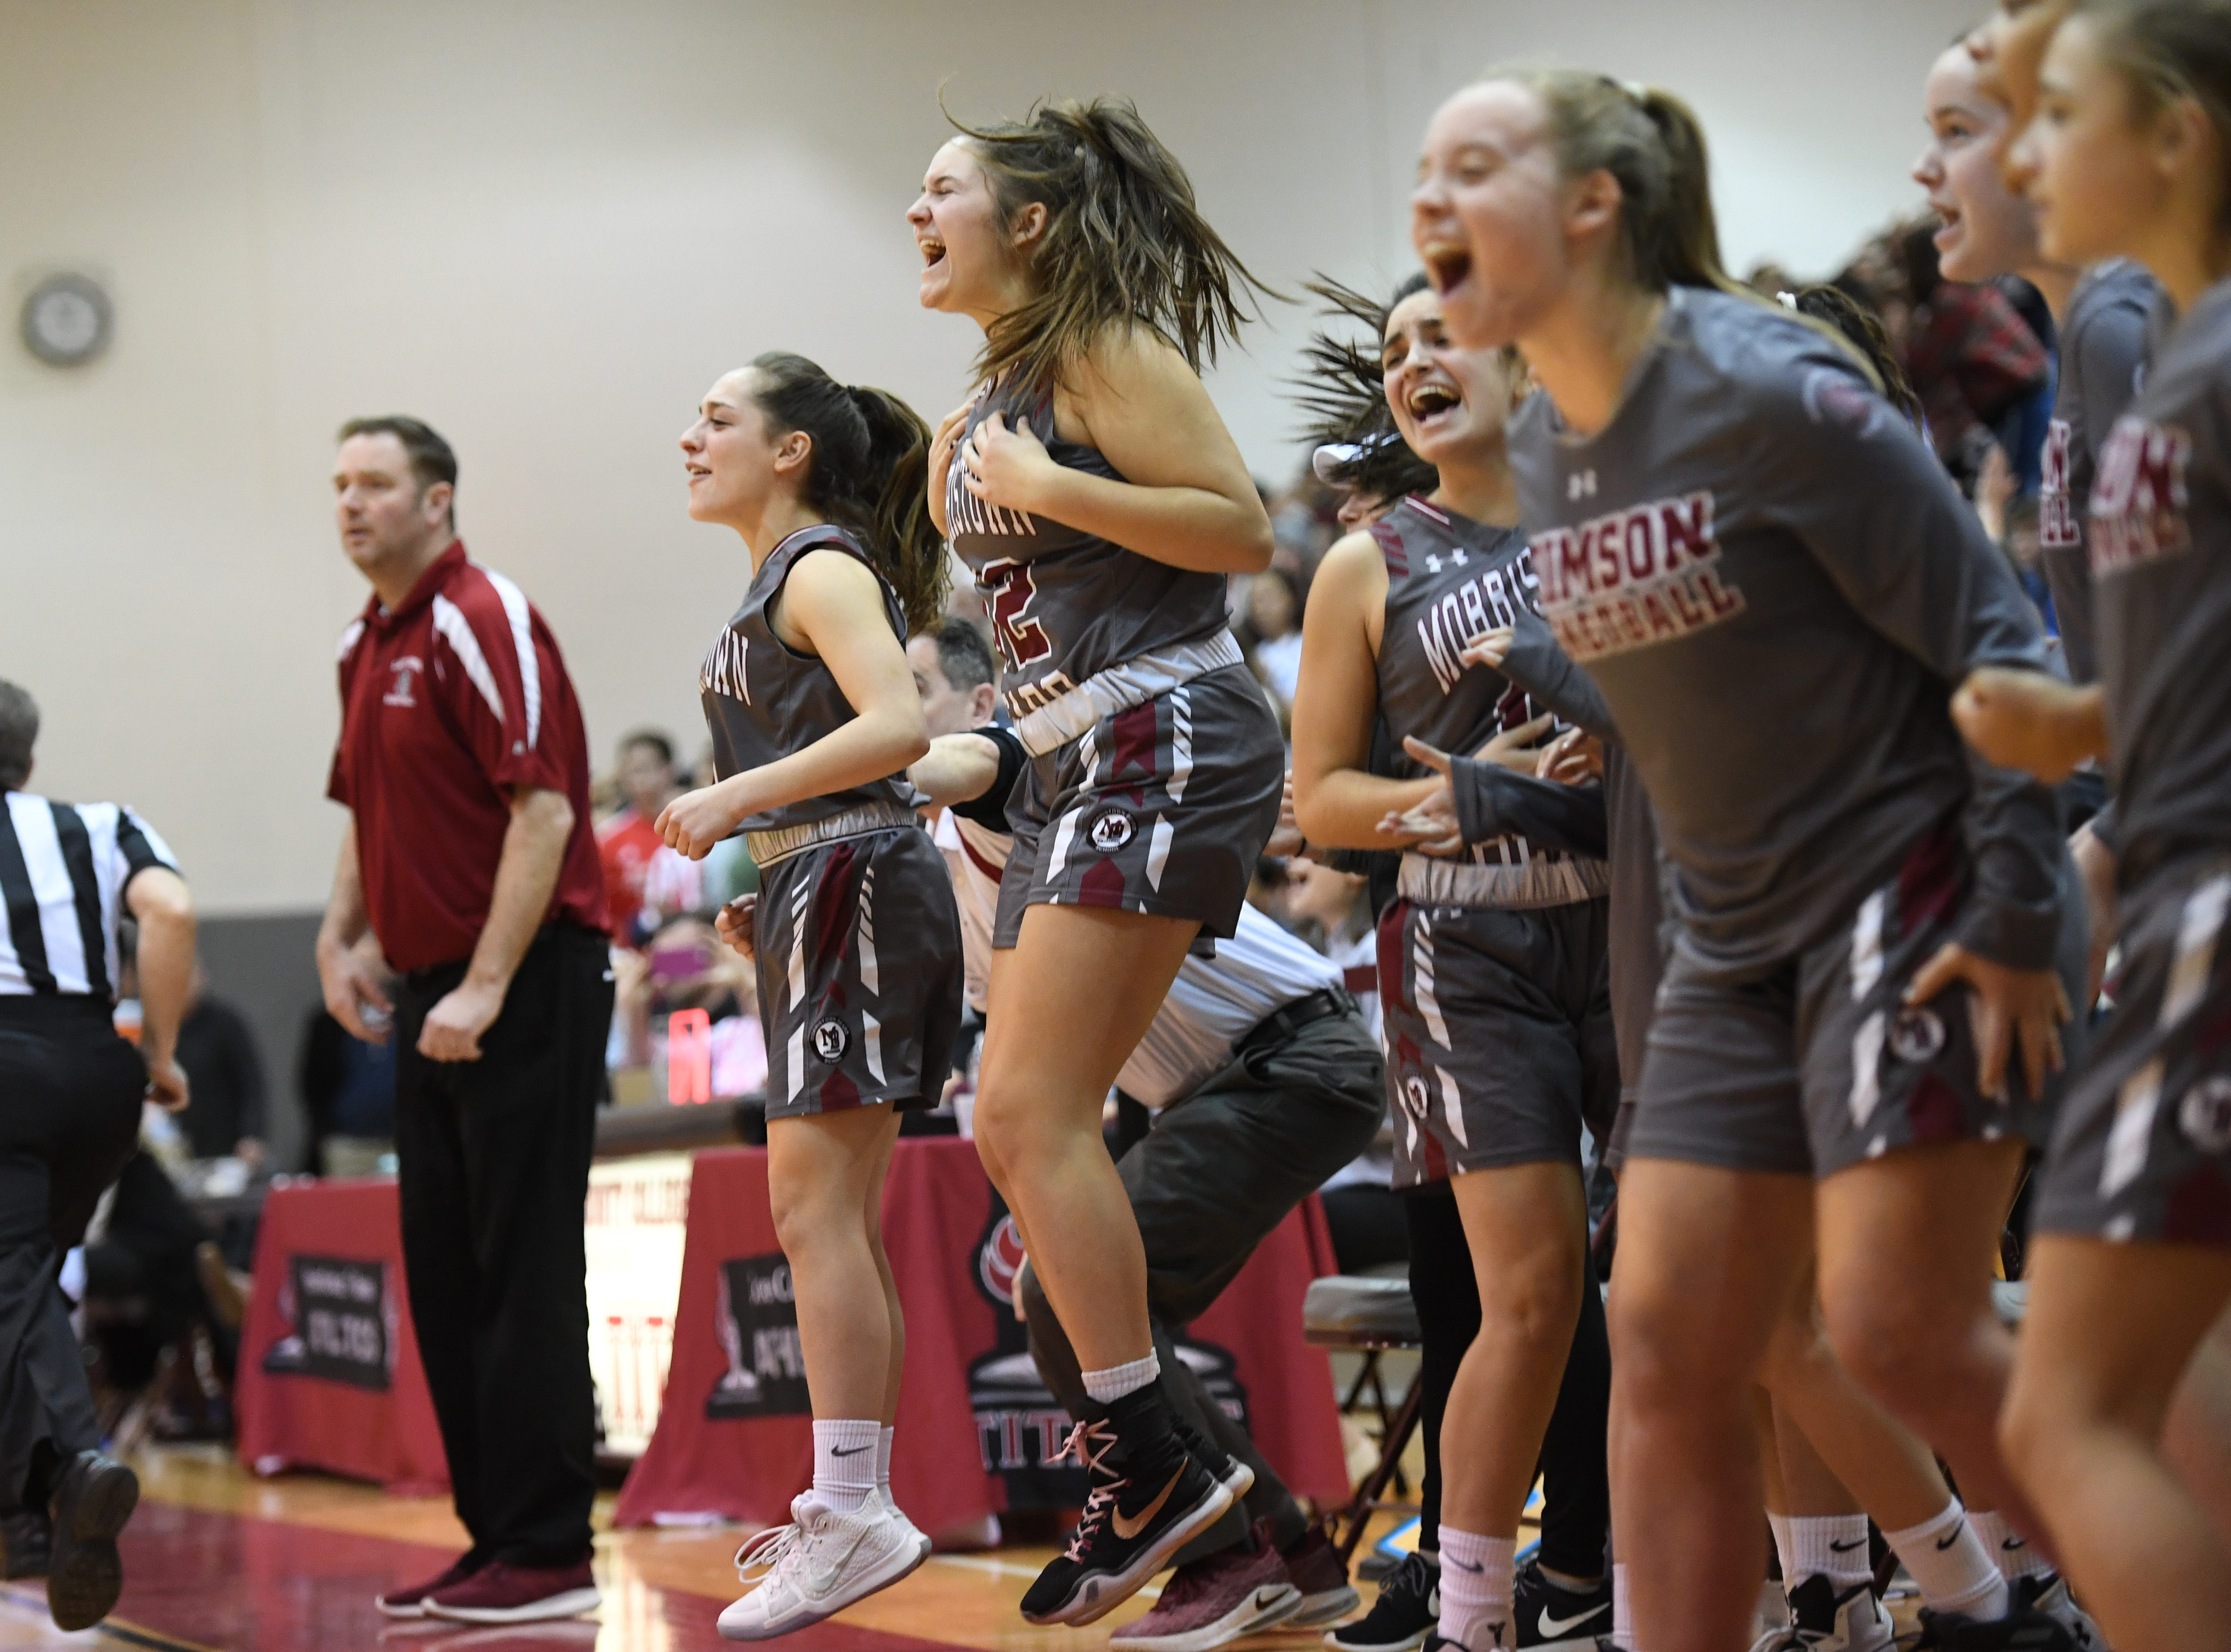 Chatham vs. Morristown-Beard in the Morris County Tournament girls basketball final at the County College of Morris in Randolph on Friday, February 22, 2019. MB cheers in the fourth quarter.